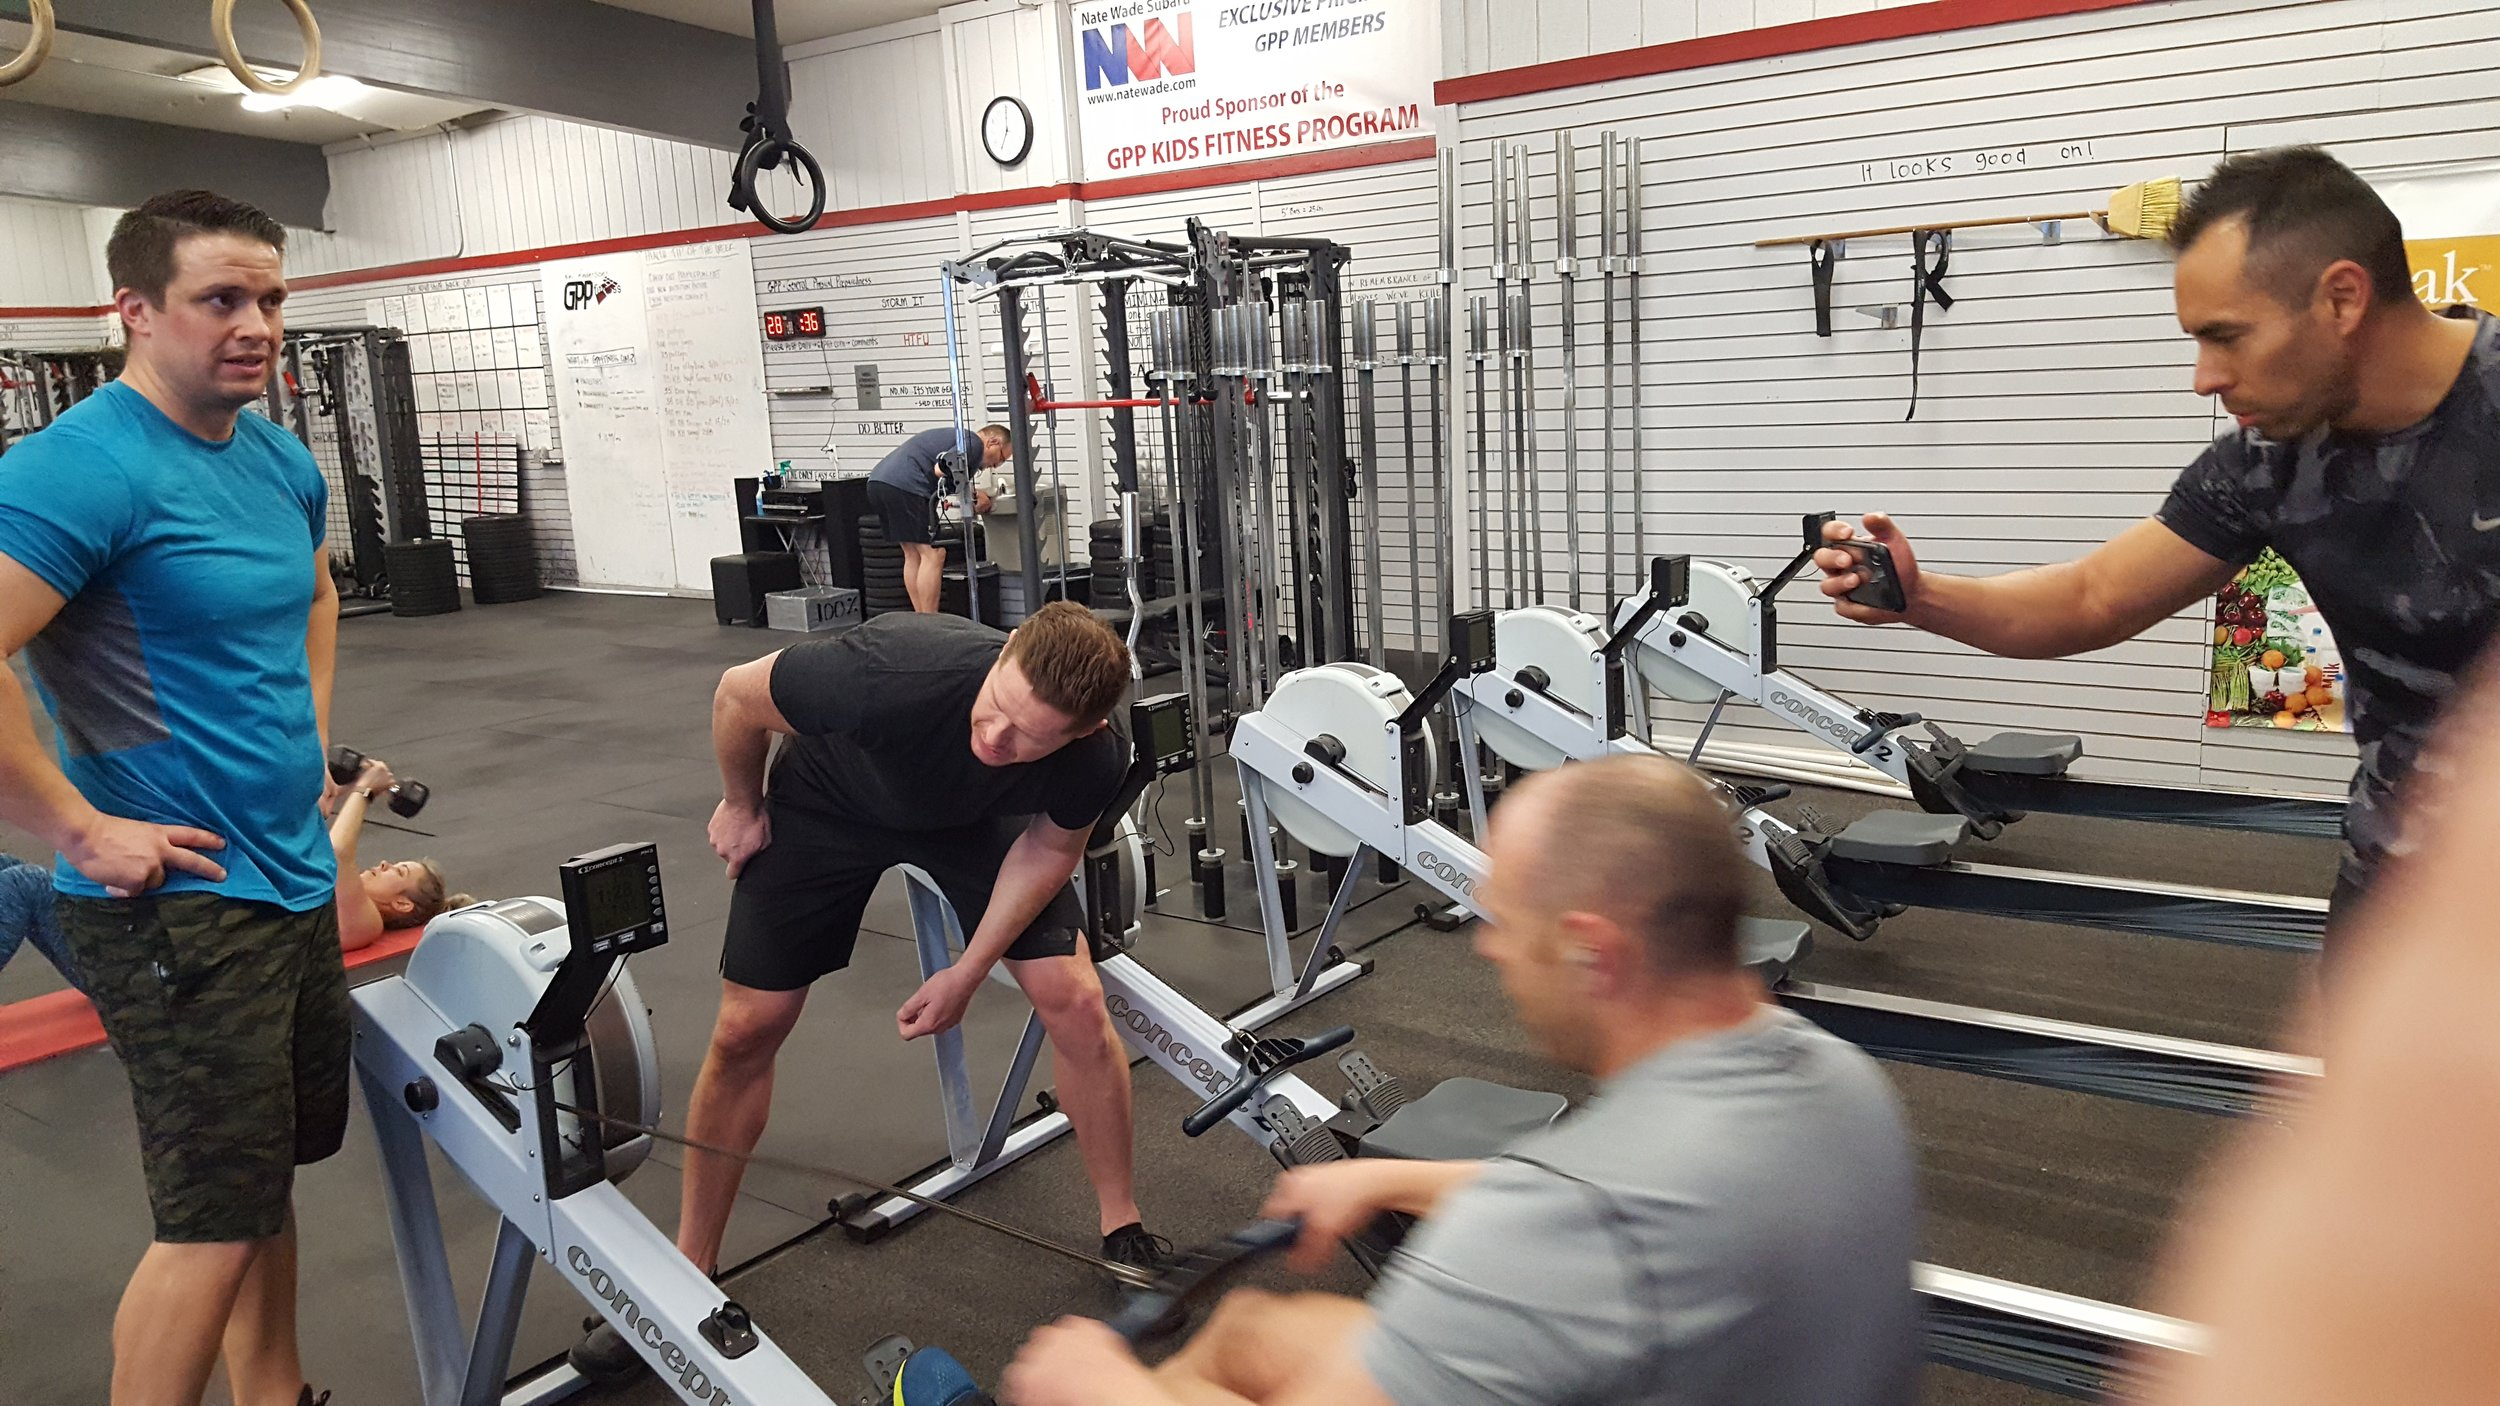 The boys getting their row on! All made significant improvements. You should ask them about it.